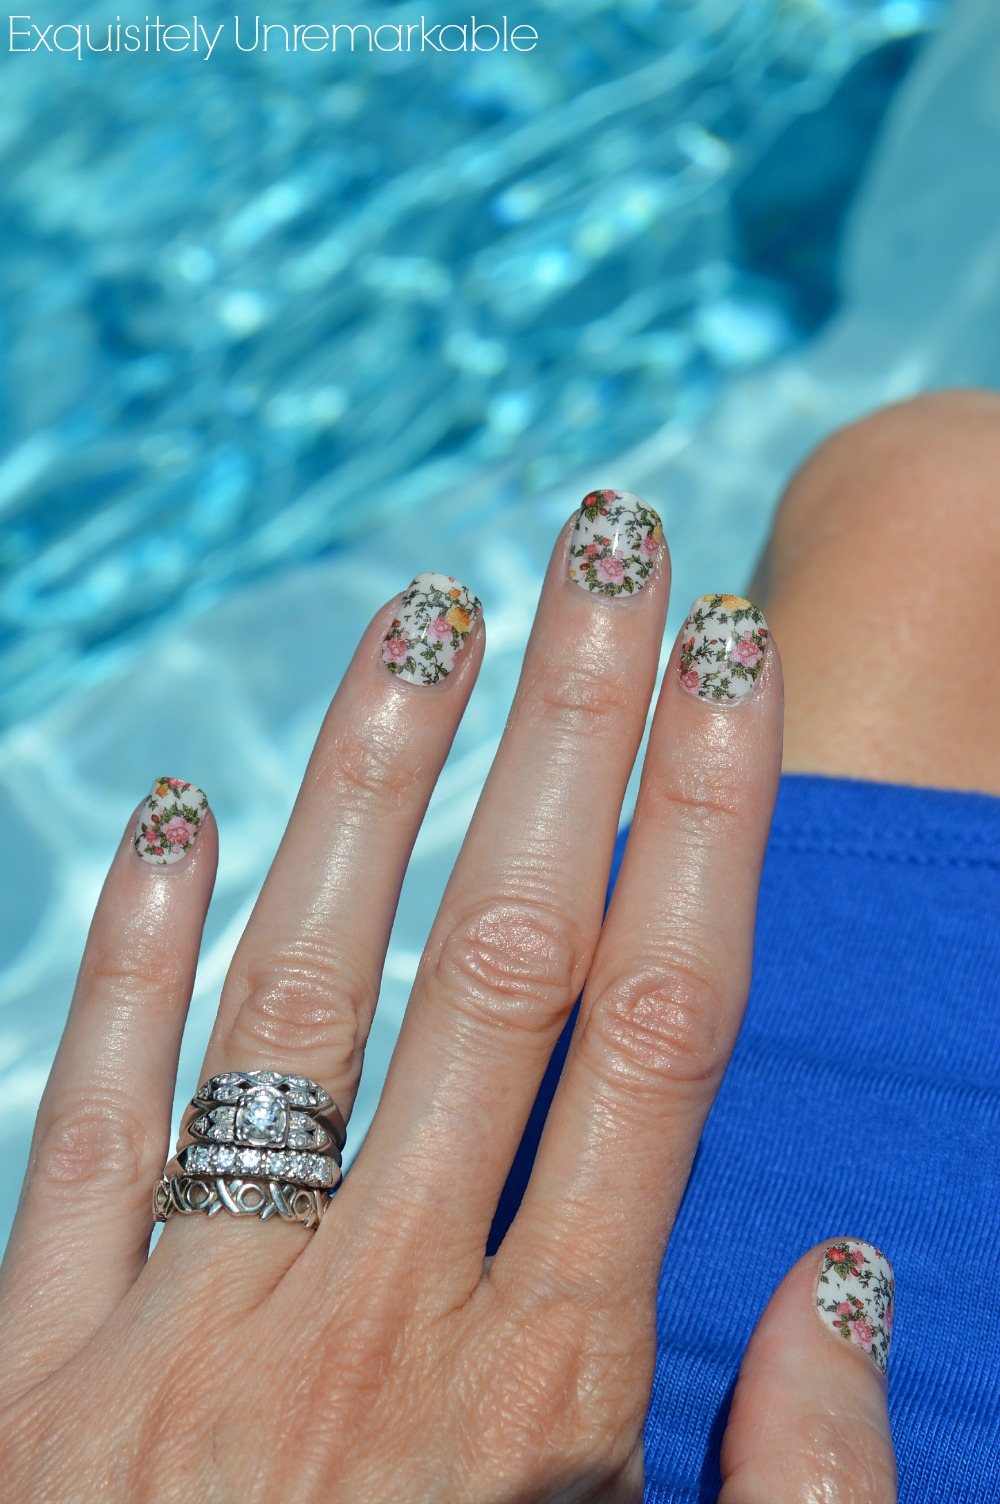 Jamberry Nails and A Giveaway! |Exquisitely Unremarkable